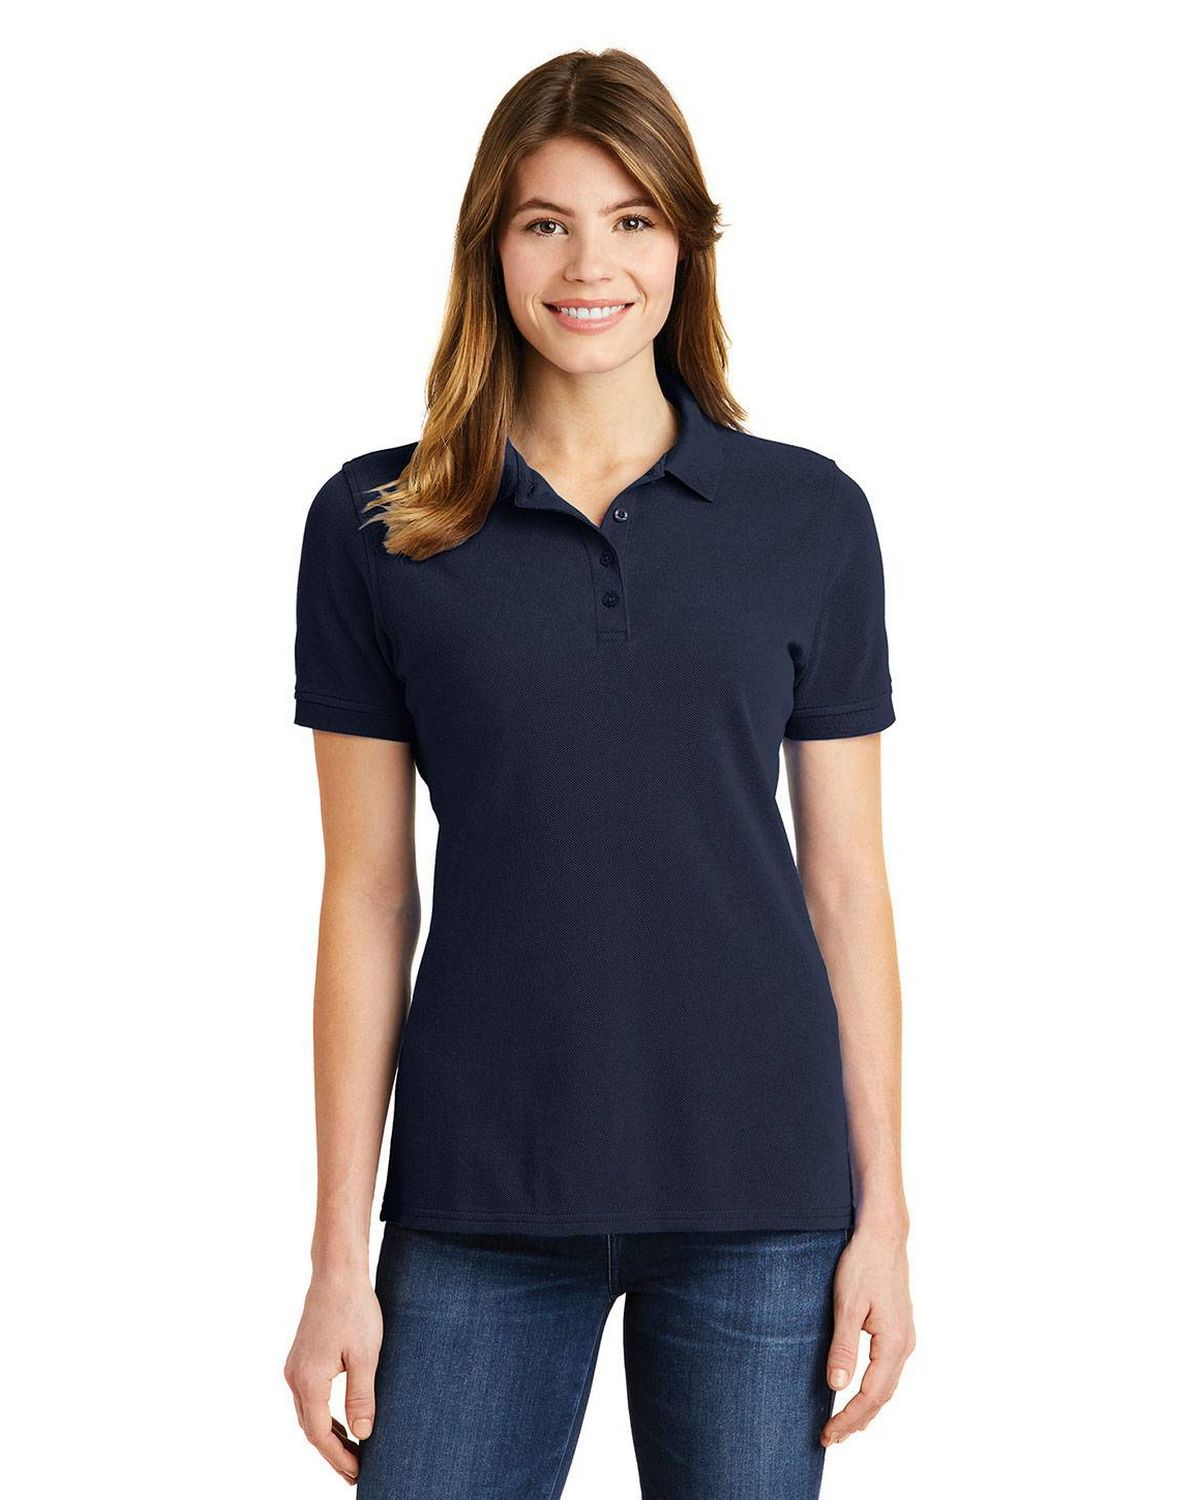 Port & Company LKP1500 Ladies Ring Spun Pique Polo Shirt